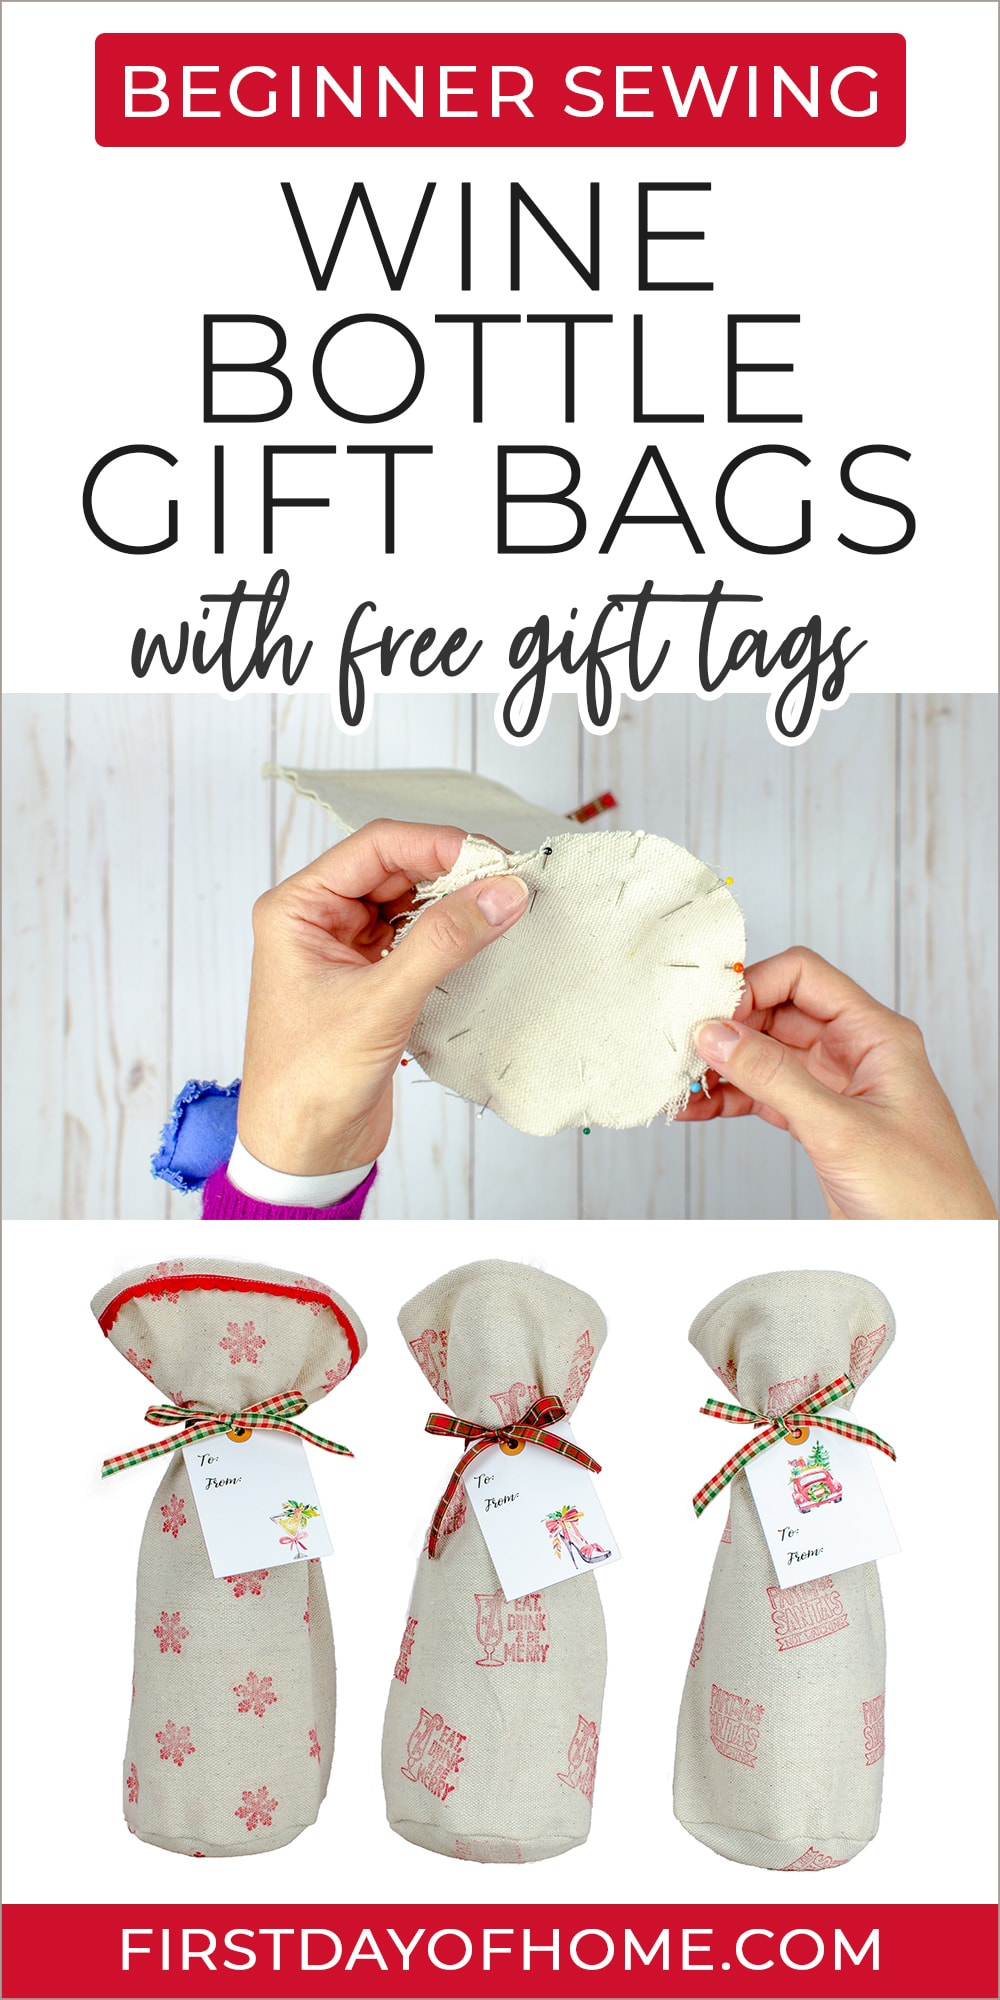 """Wine bottle gift bags made from drop cloth with text overlay """"Beginner Sewing Wine Bottle Gift Bags with Free Gift Tags"""""""